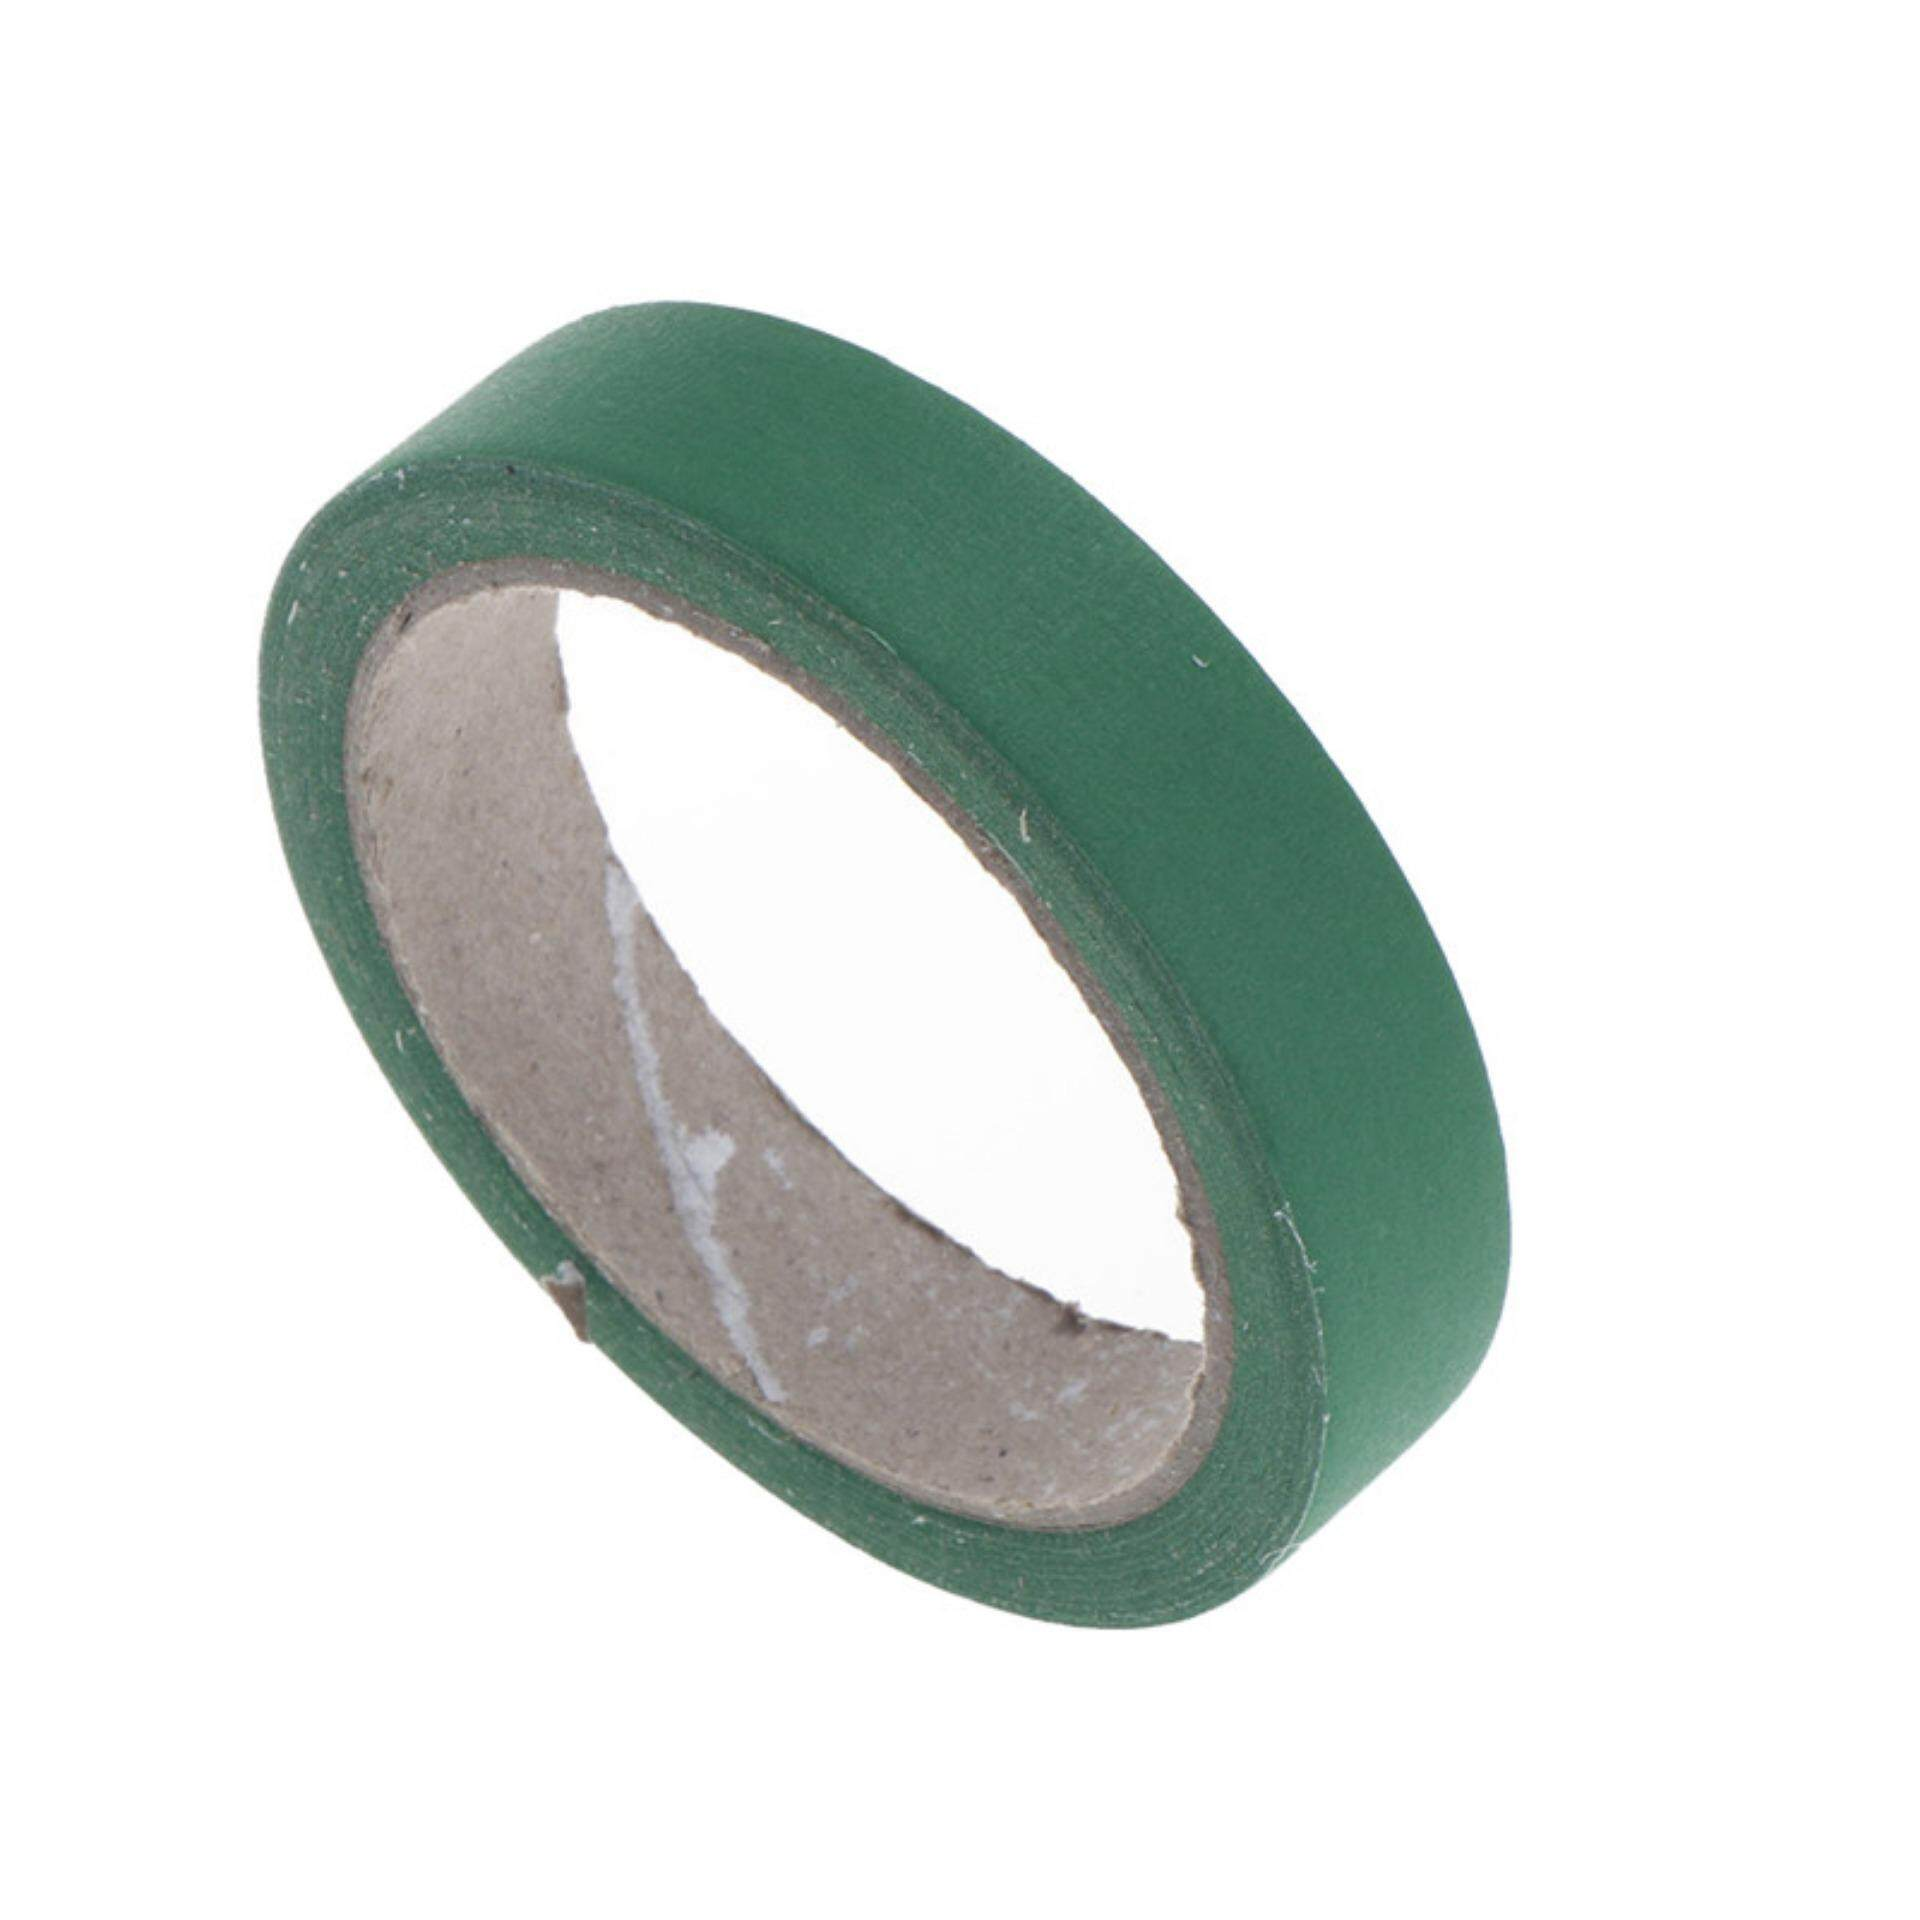 Mua Colourful Paper Sticky Tape DIY Masking Painting Tape General Purpose Craft Tool Green 10mm*20m